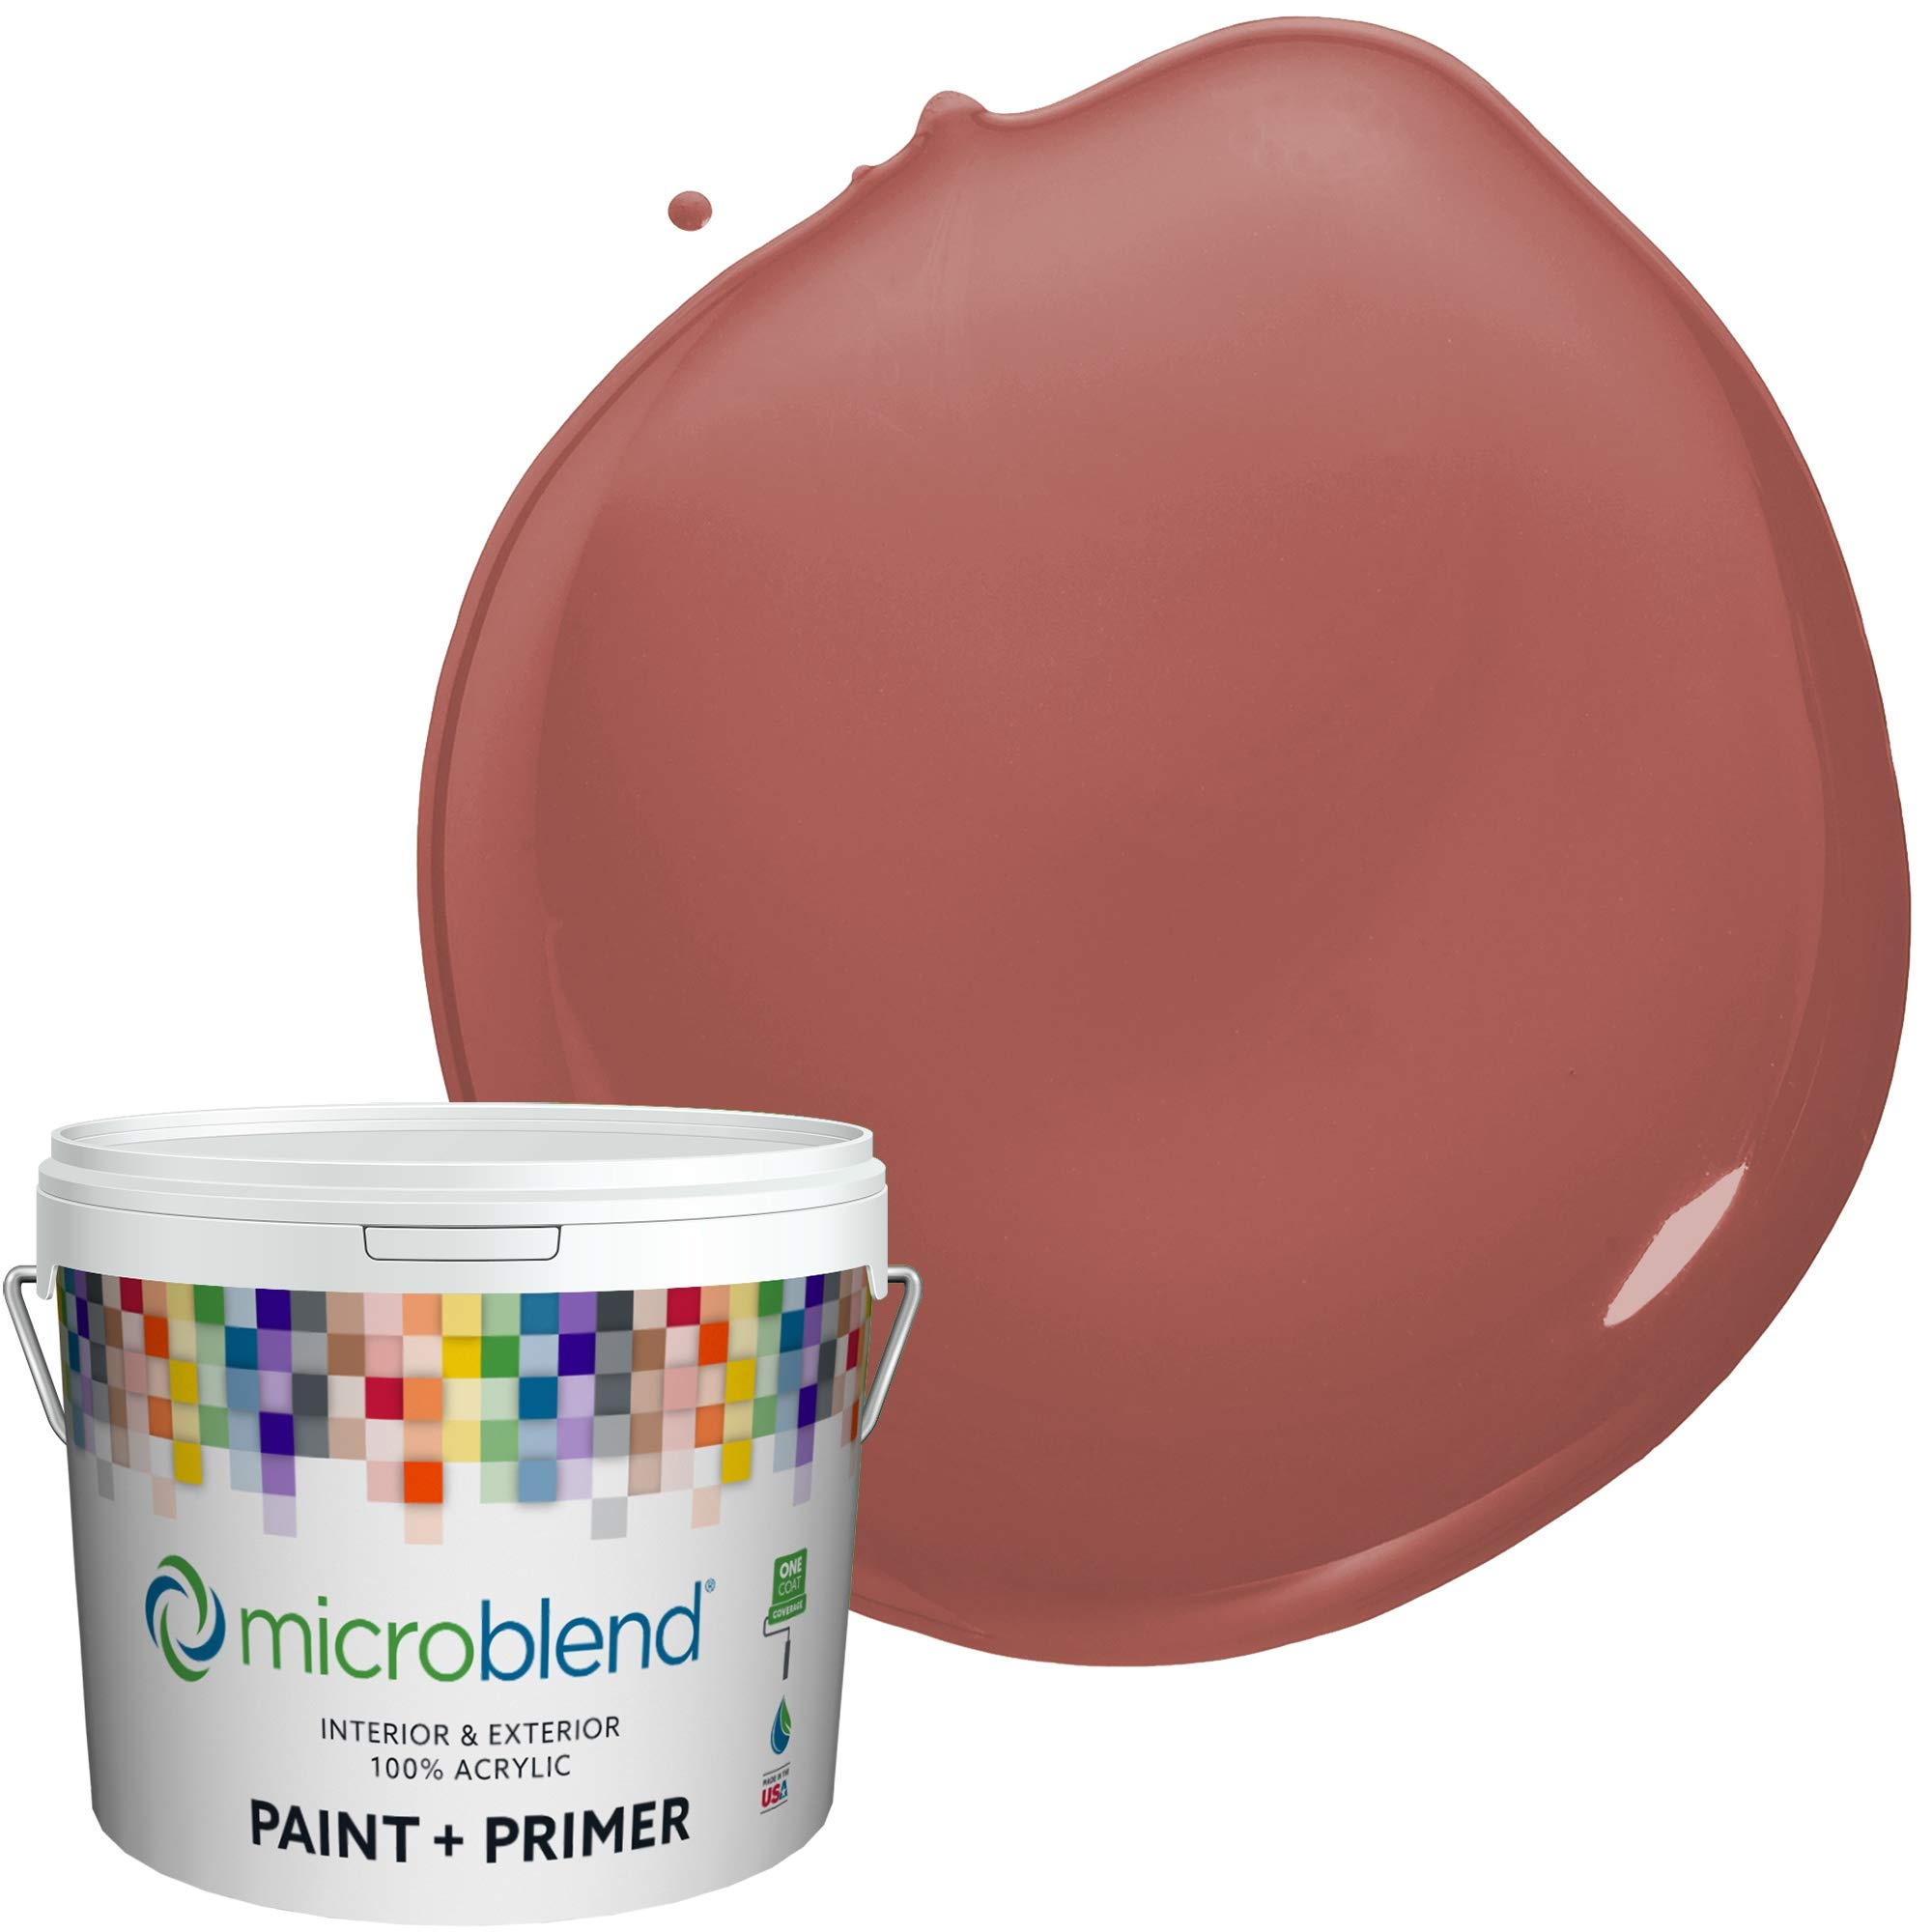 MicroBlend Interior Paint + Primer, Spice Trade, Eggshell Sheen, 2 Gallon, Custom Made, Premium Quality One Coat Hide & Washable Paint